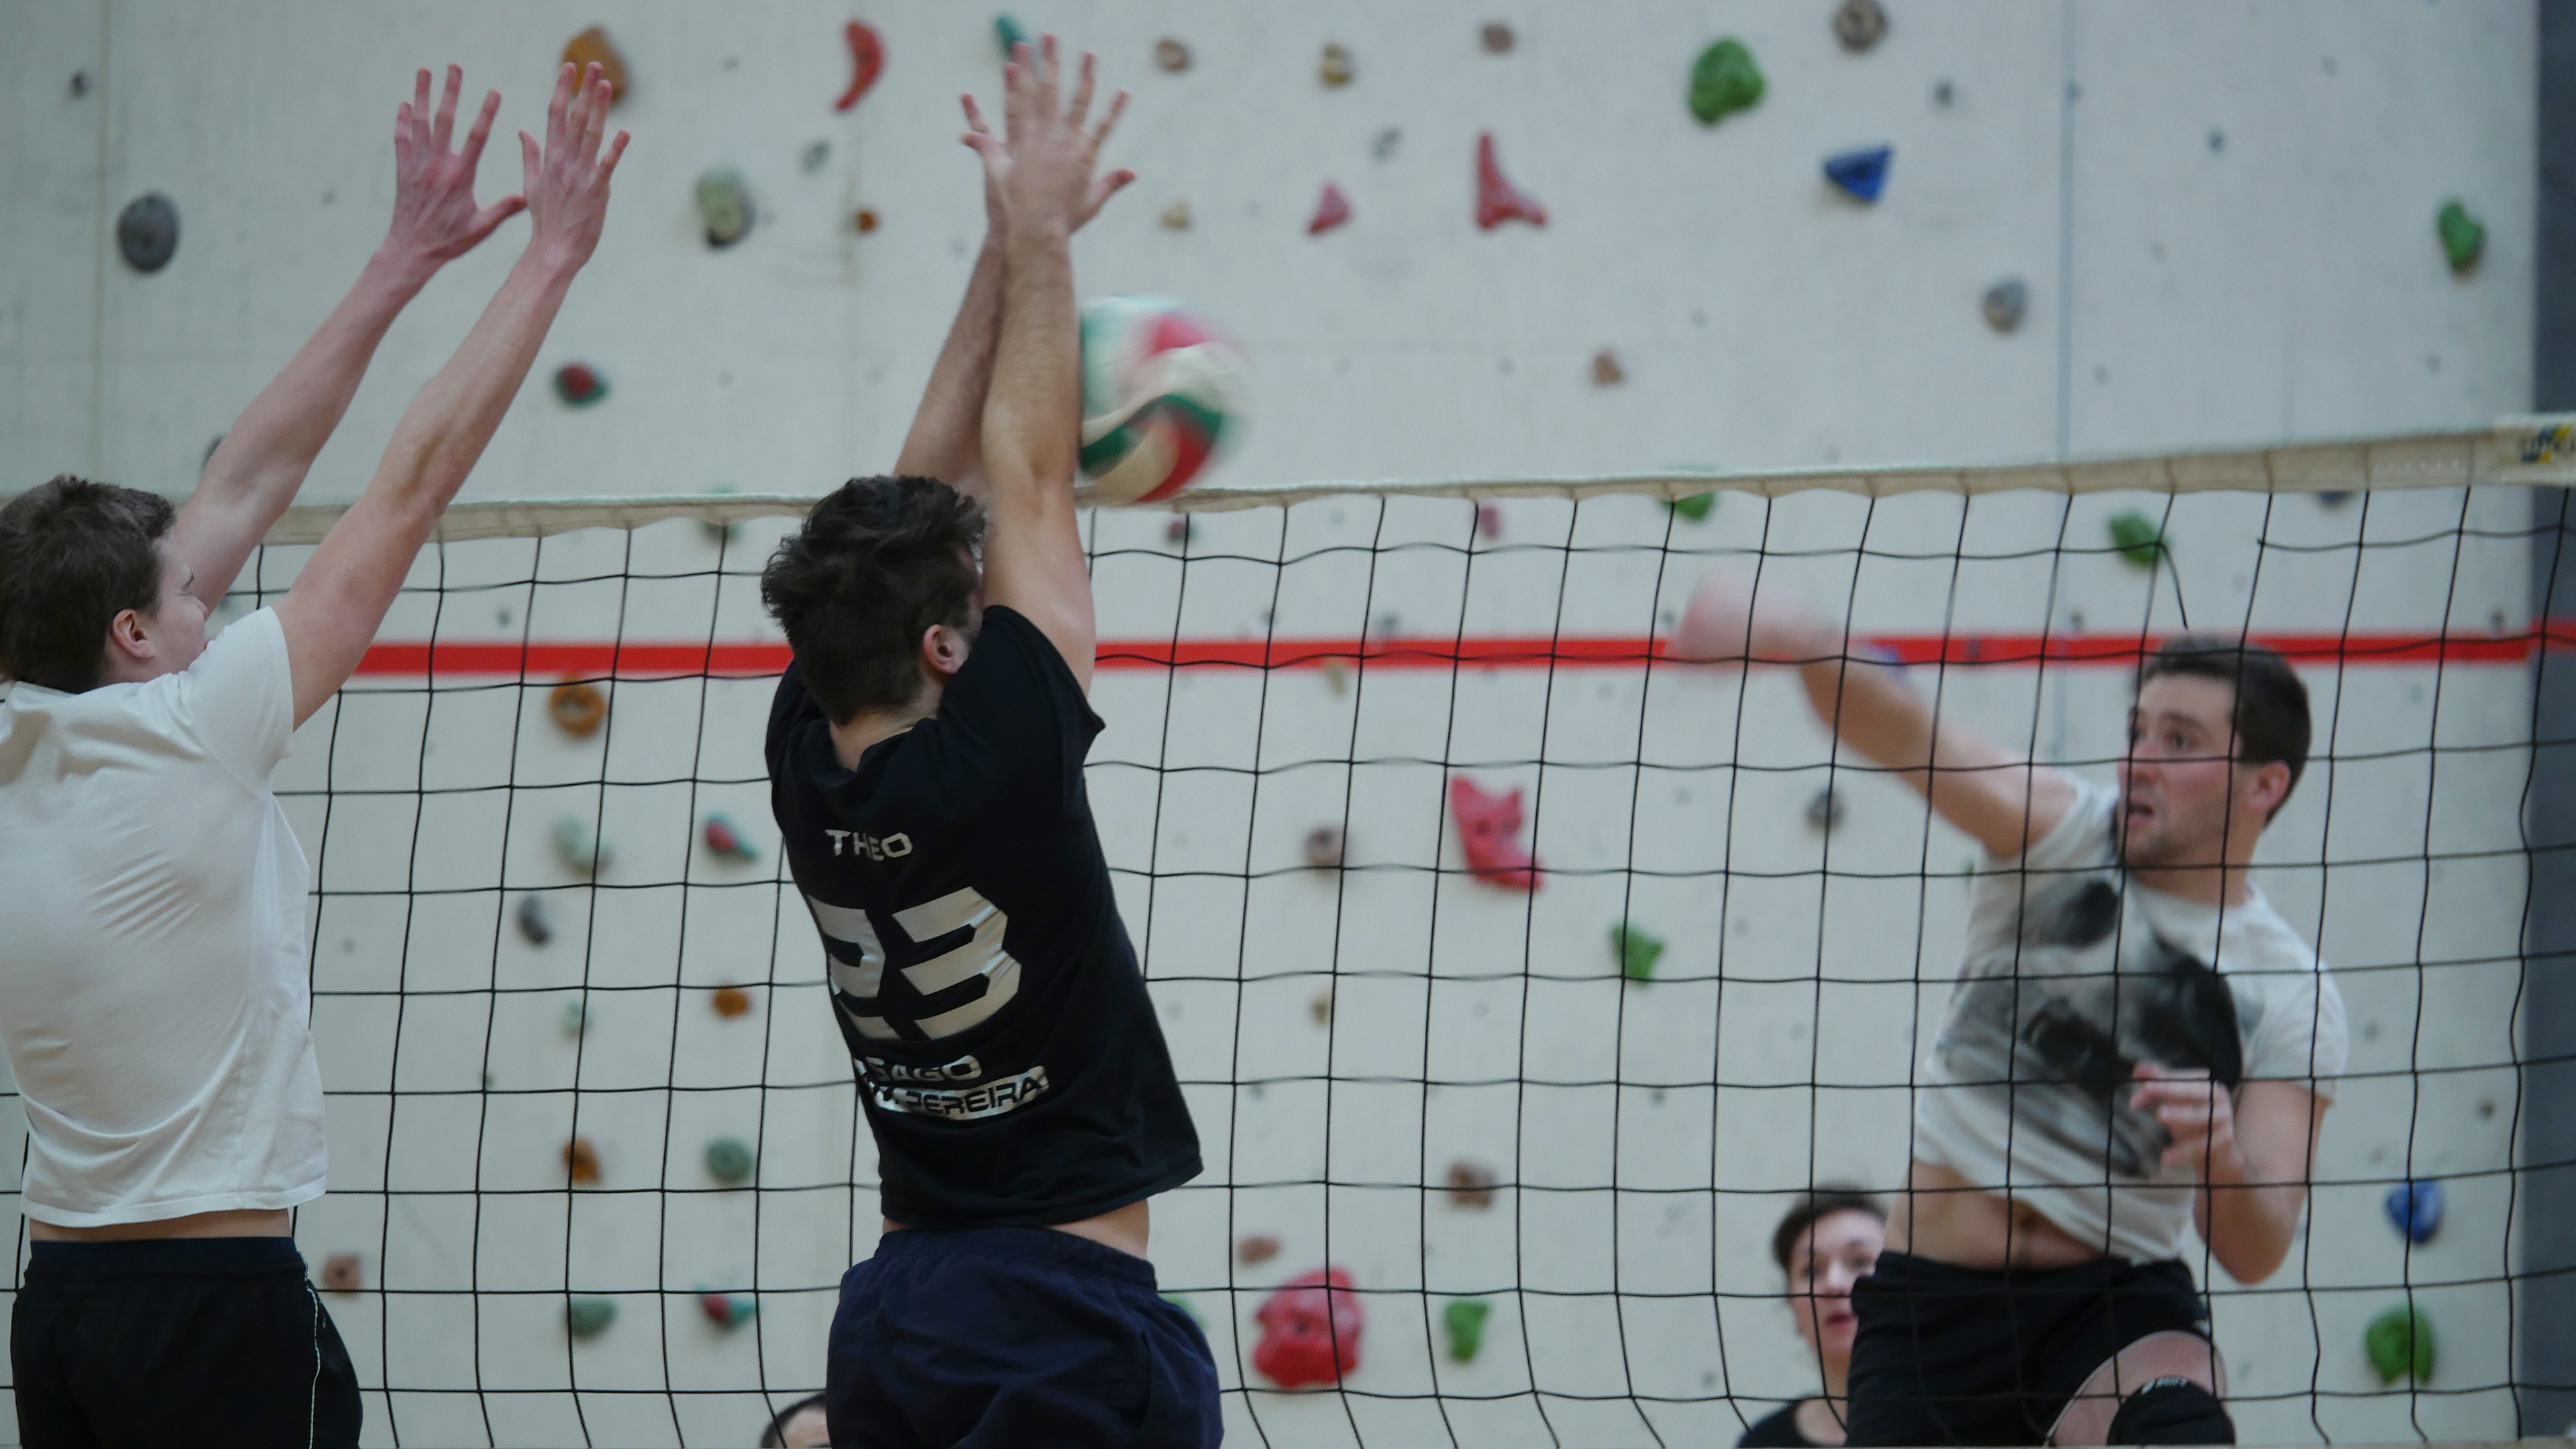 Tournoi Volley USMA 2015-47.JPG